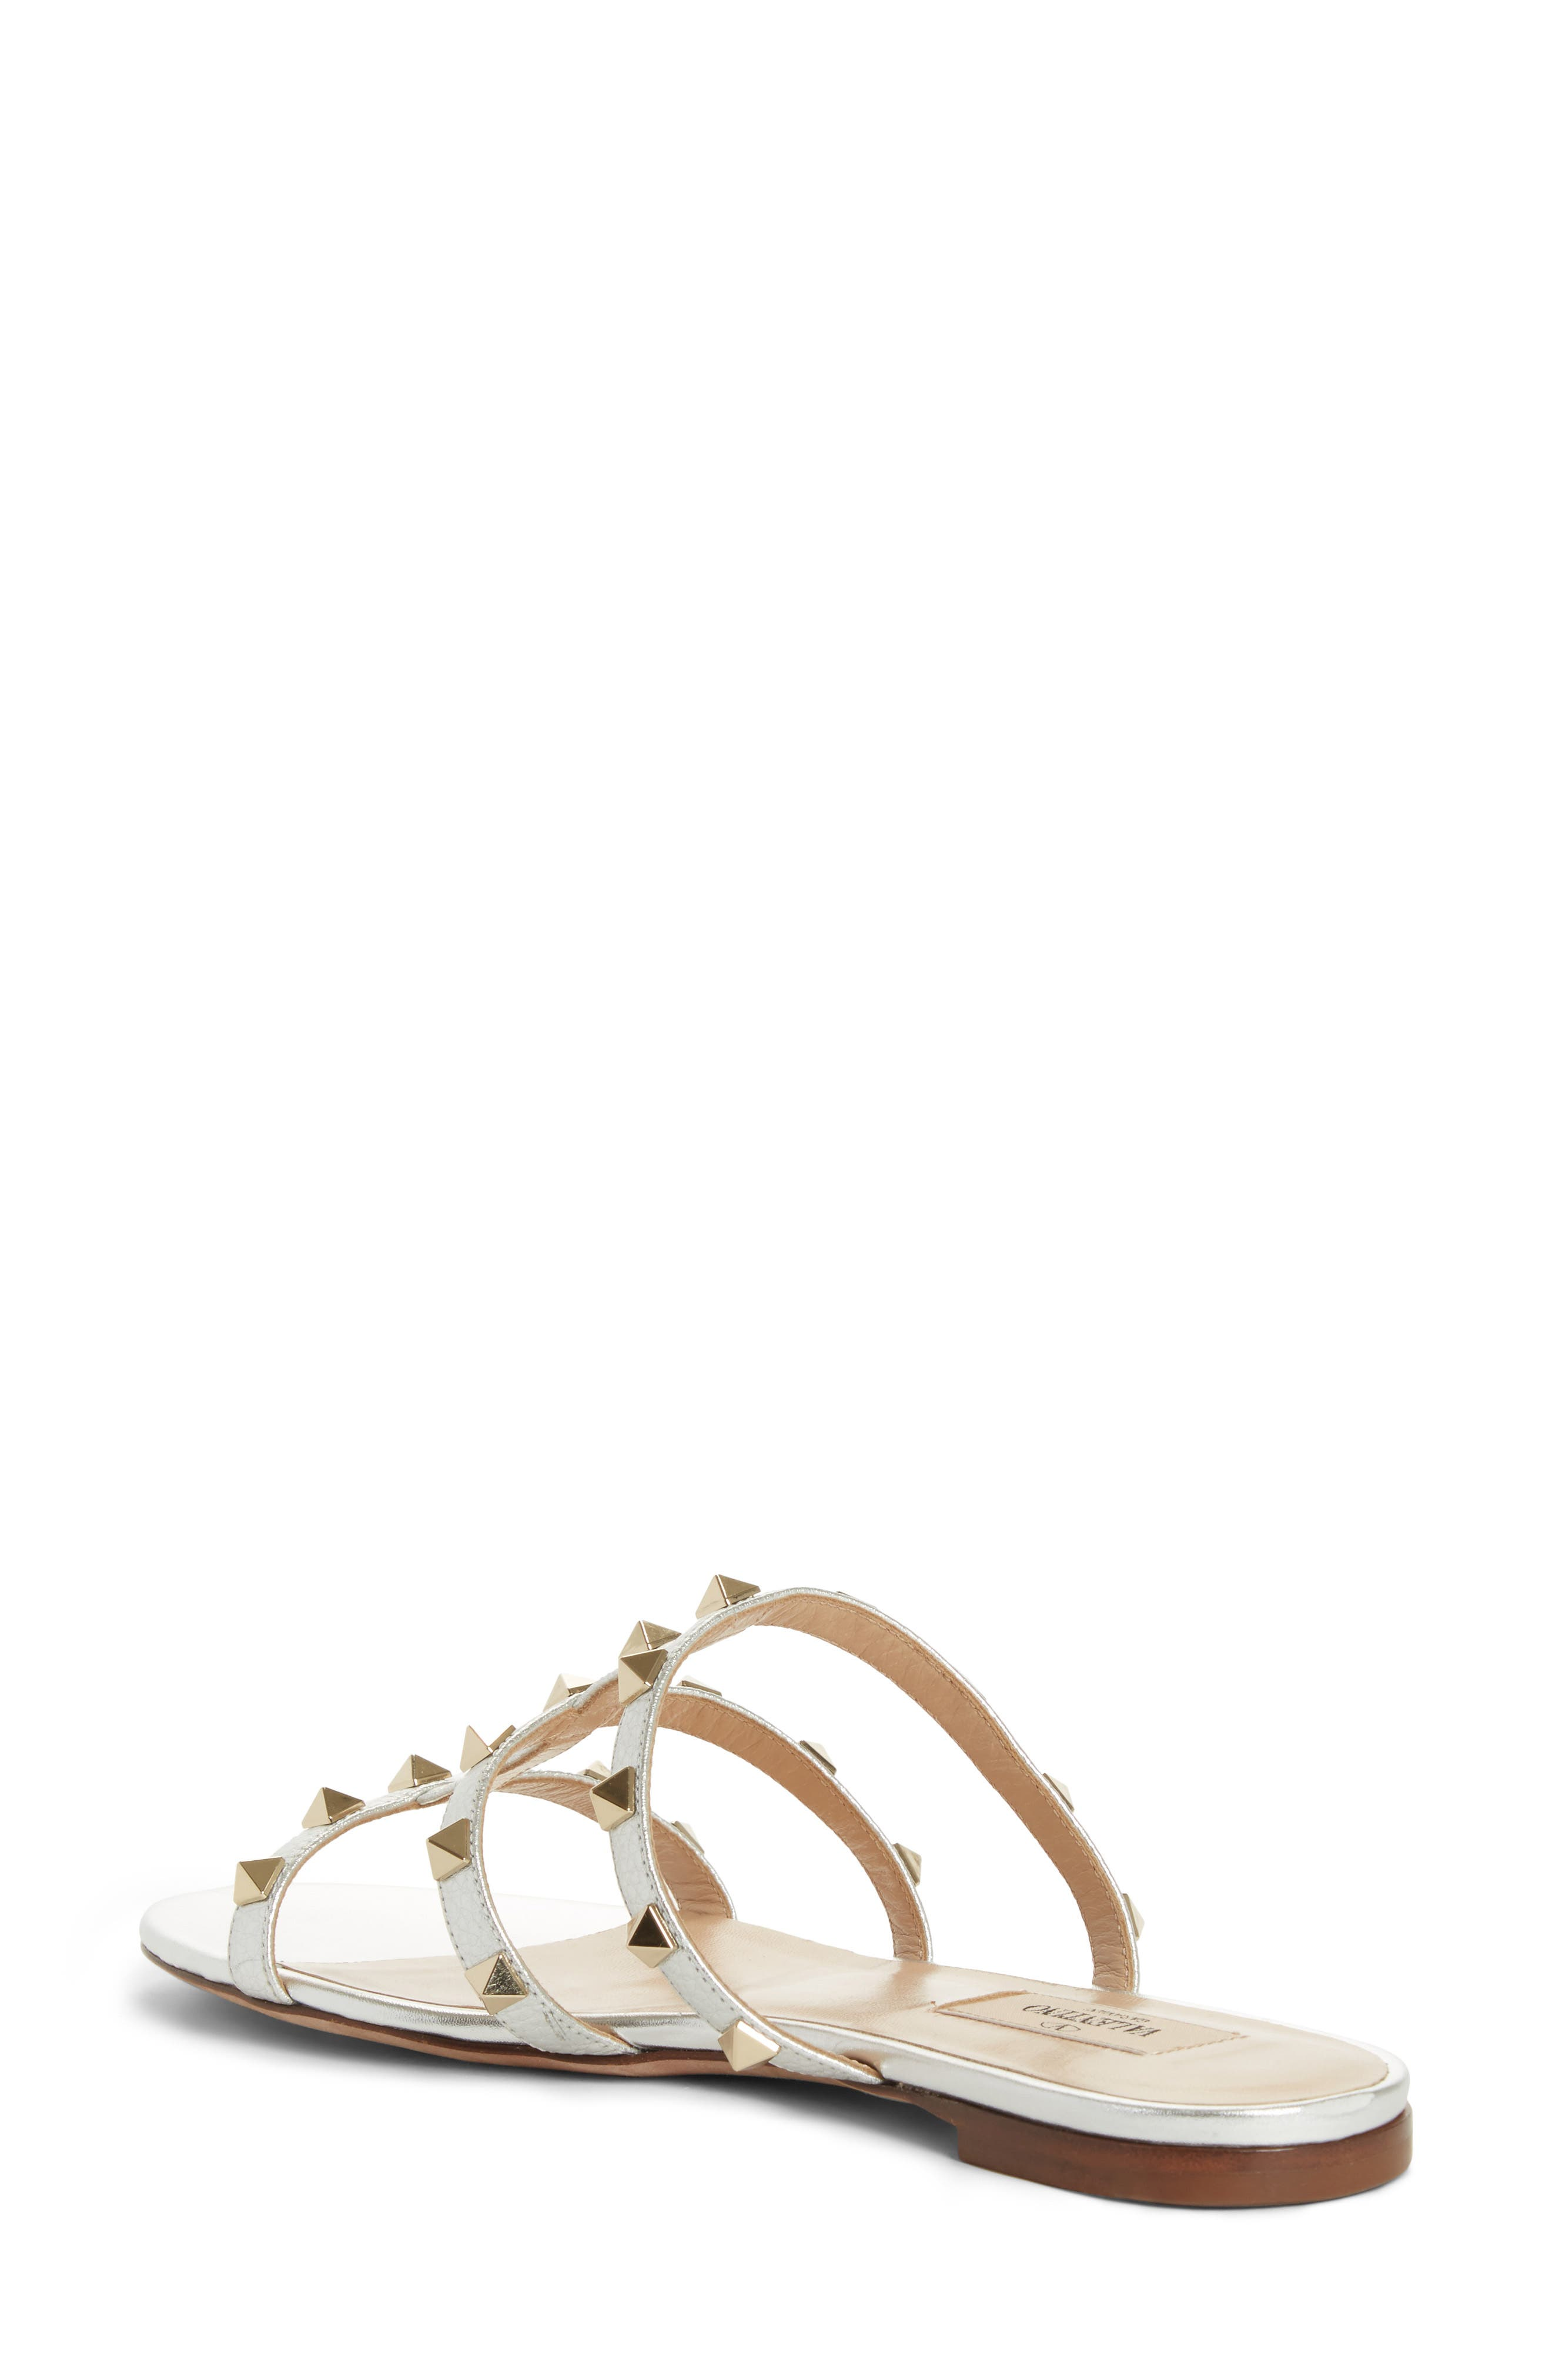 Rockstud Cage Slide Sandal,                             Alternate thumbnail 2, color,                             METALLIC SILVER